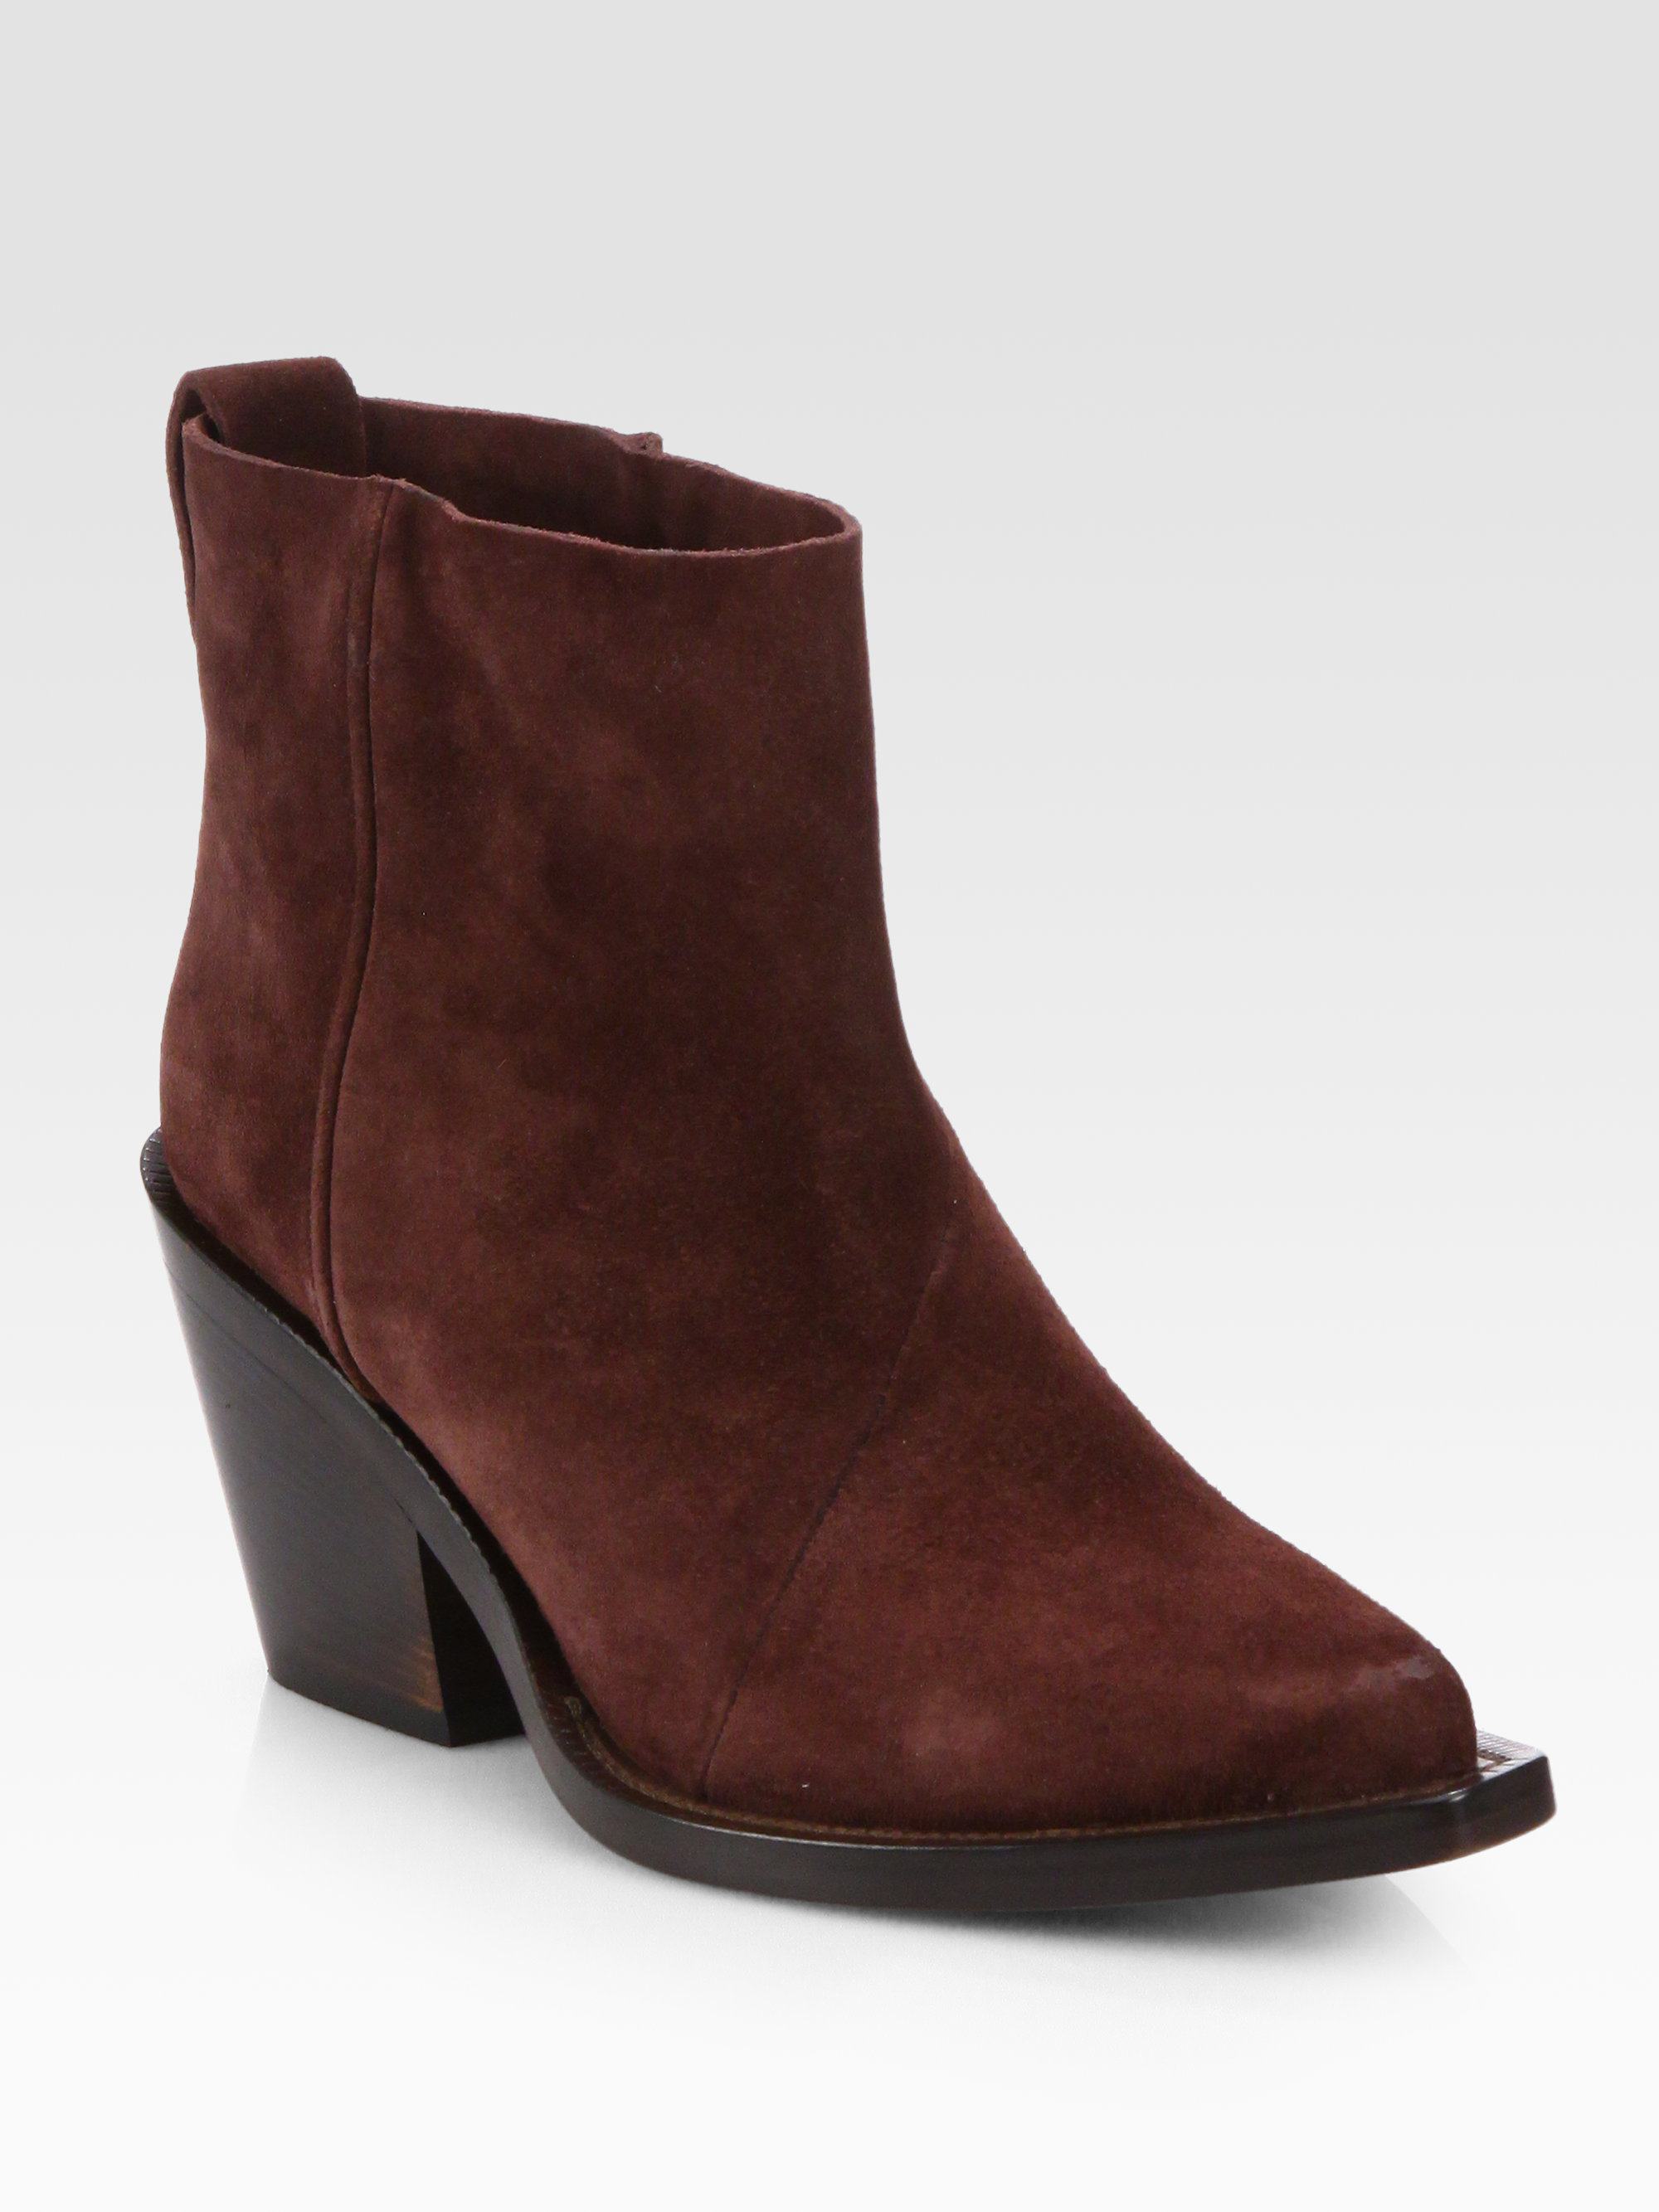 acne studios donna suede ankle boots in wine lyst